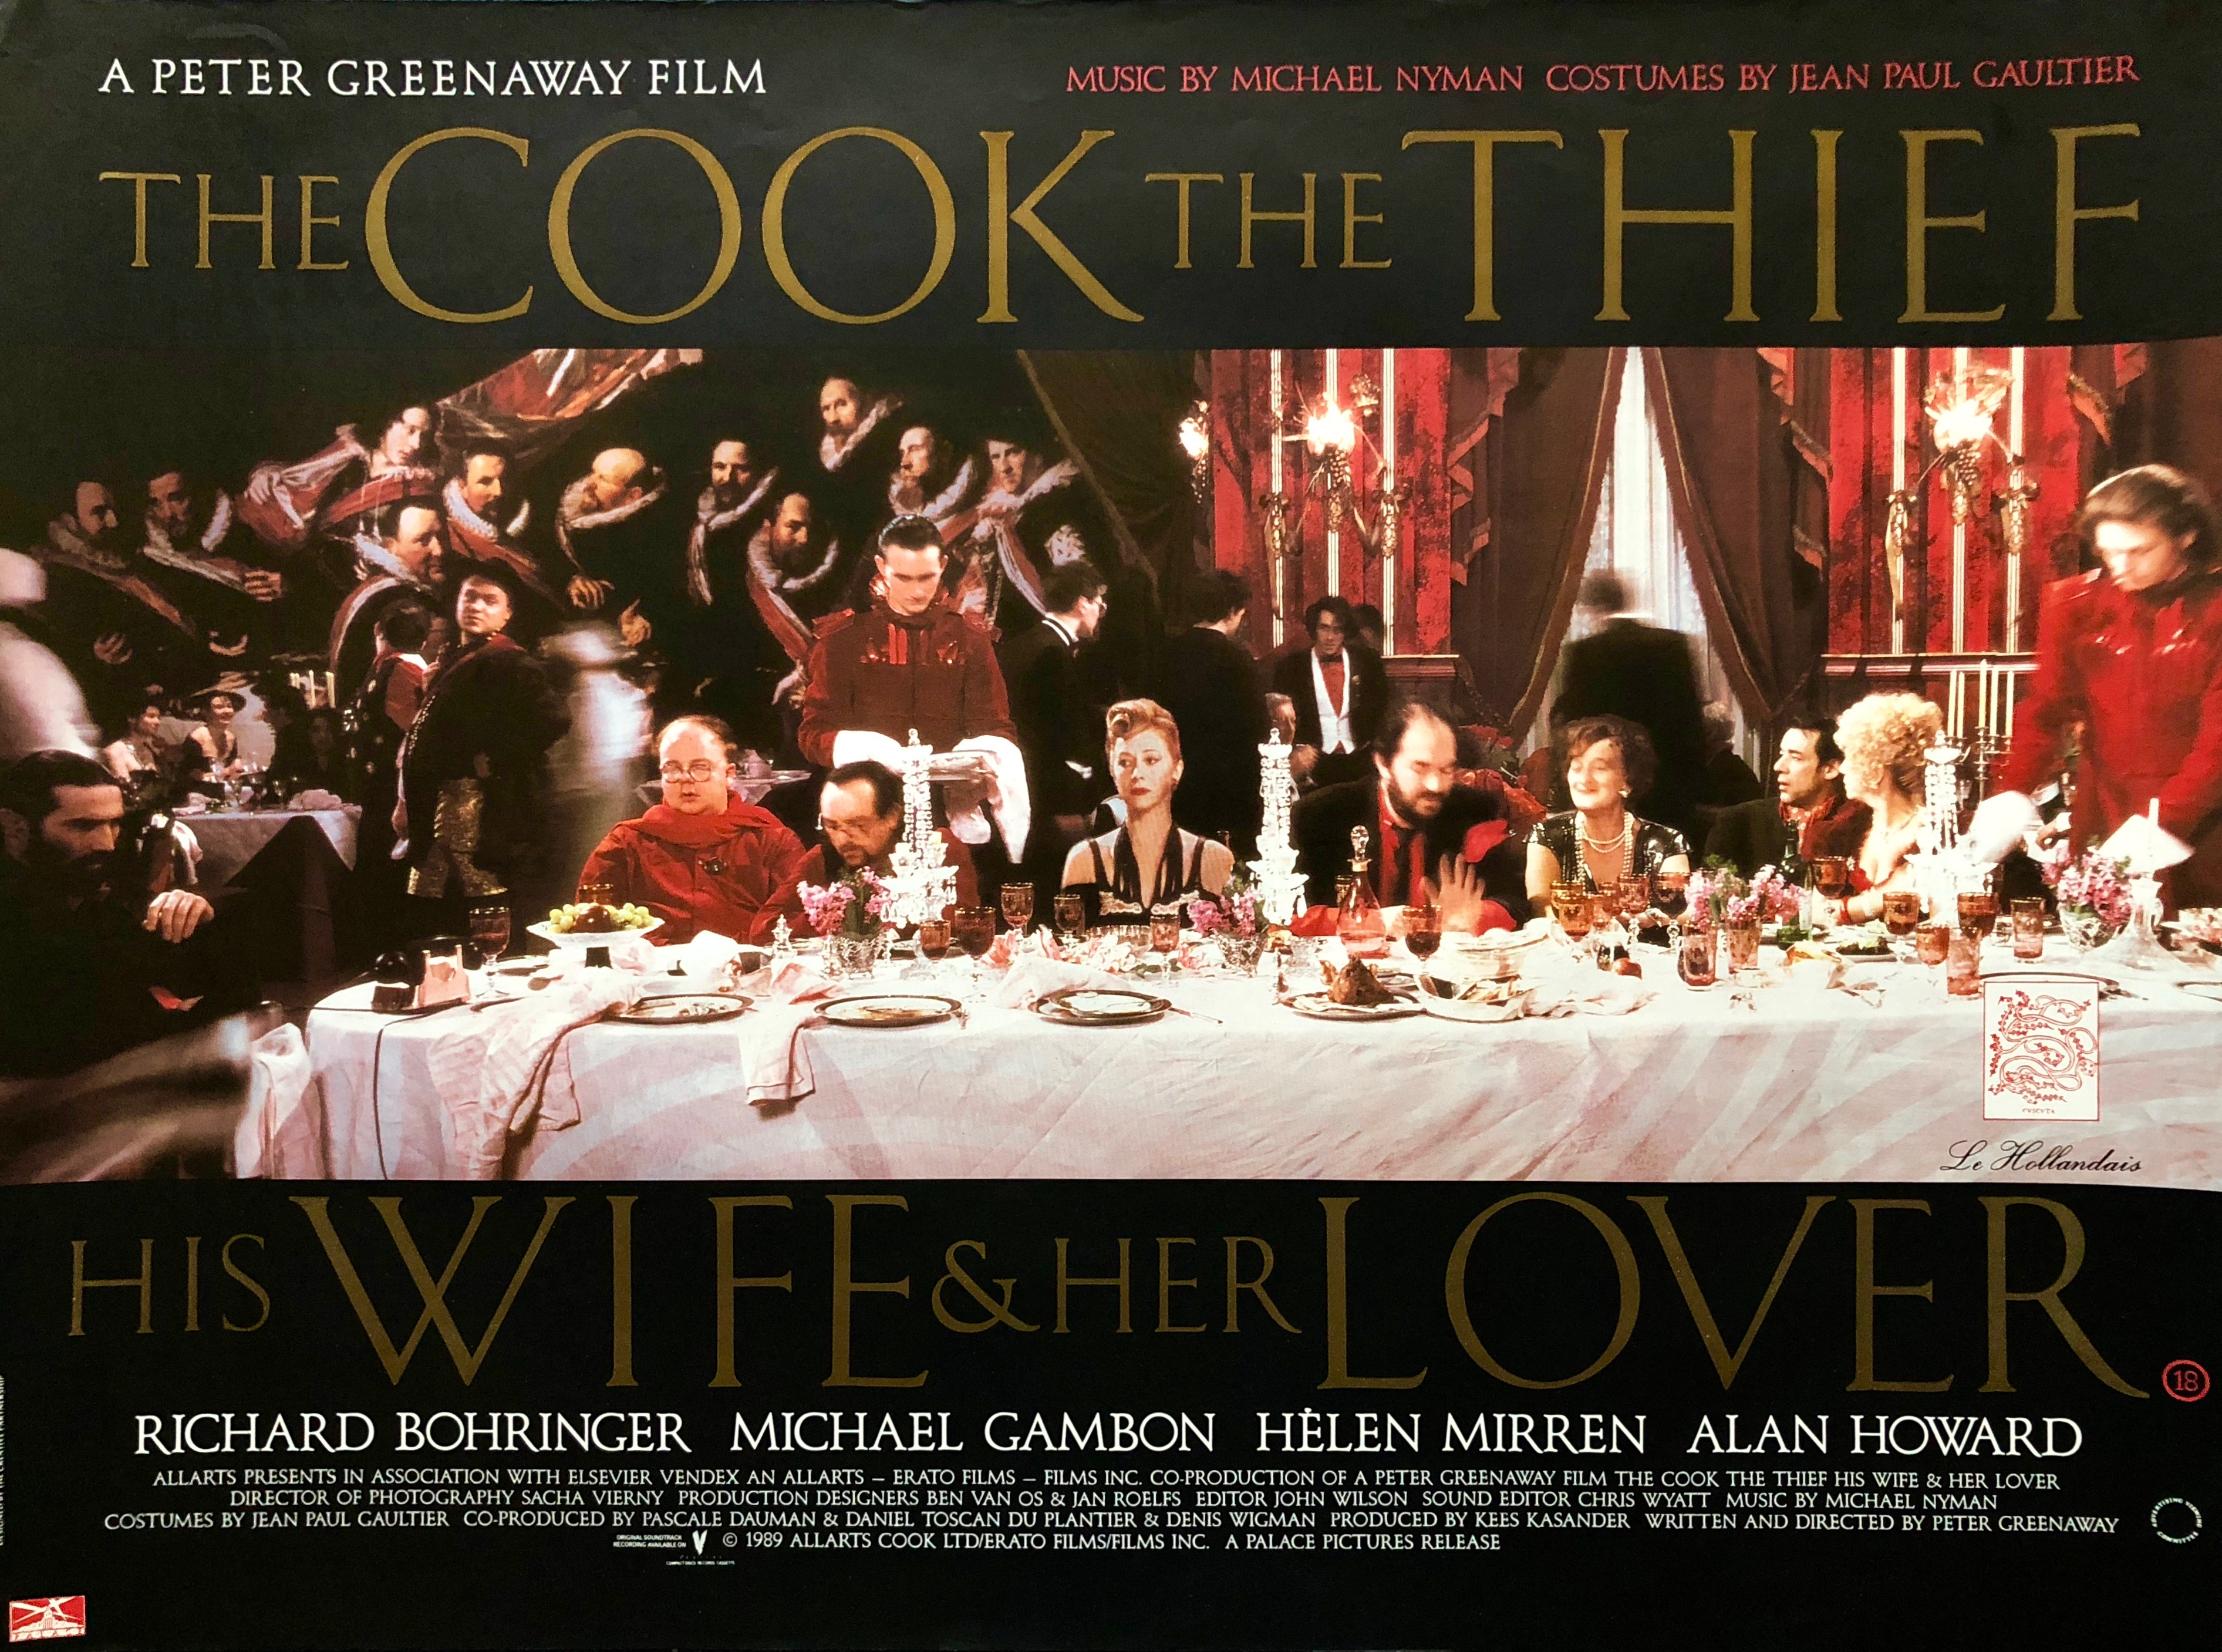 an analysis of the cook the thief his wife and her lover by peter greenway The cook, the thief, his wife & her lover 120 mins direction: peter greenaway whose vulgarity humiliates his wife (mirren) and leads her into embarking on.